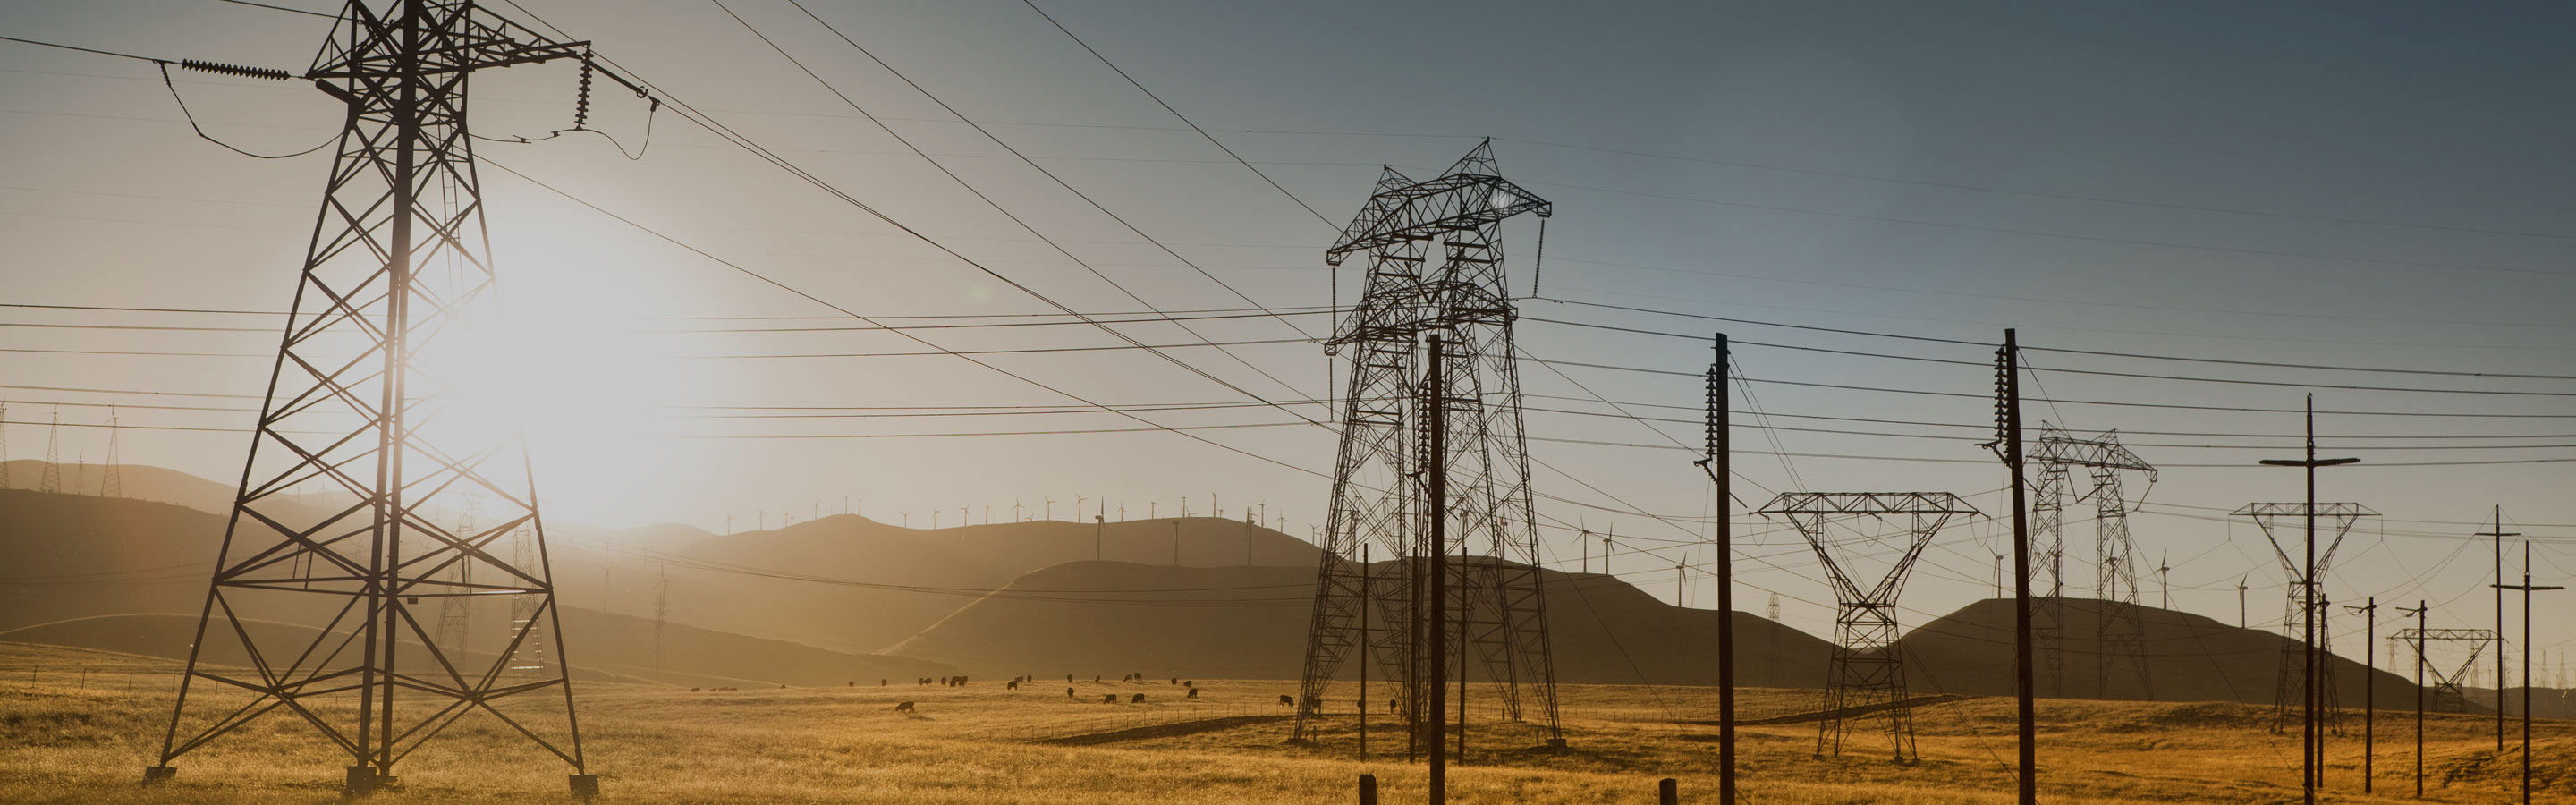 Off Lineups Offers Backup Powersource Alternative Power Content